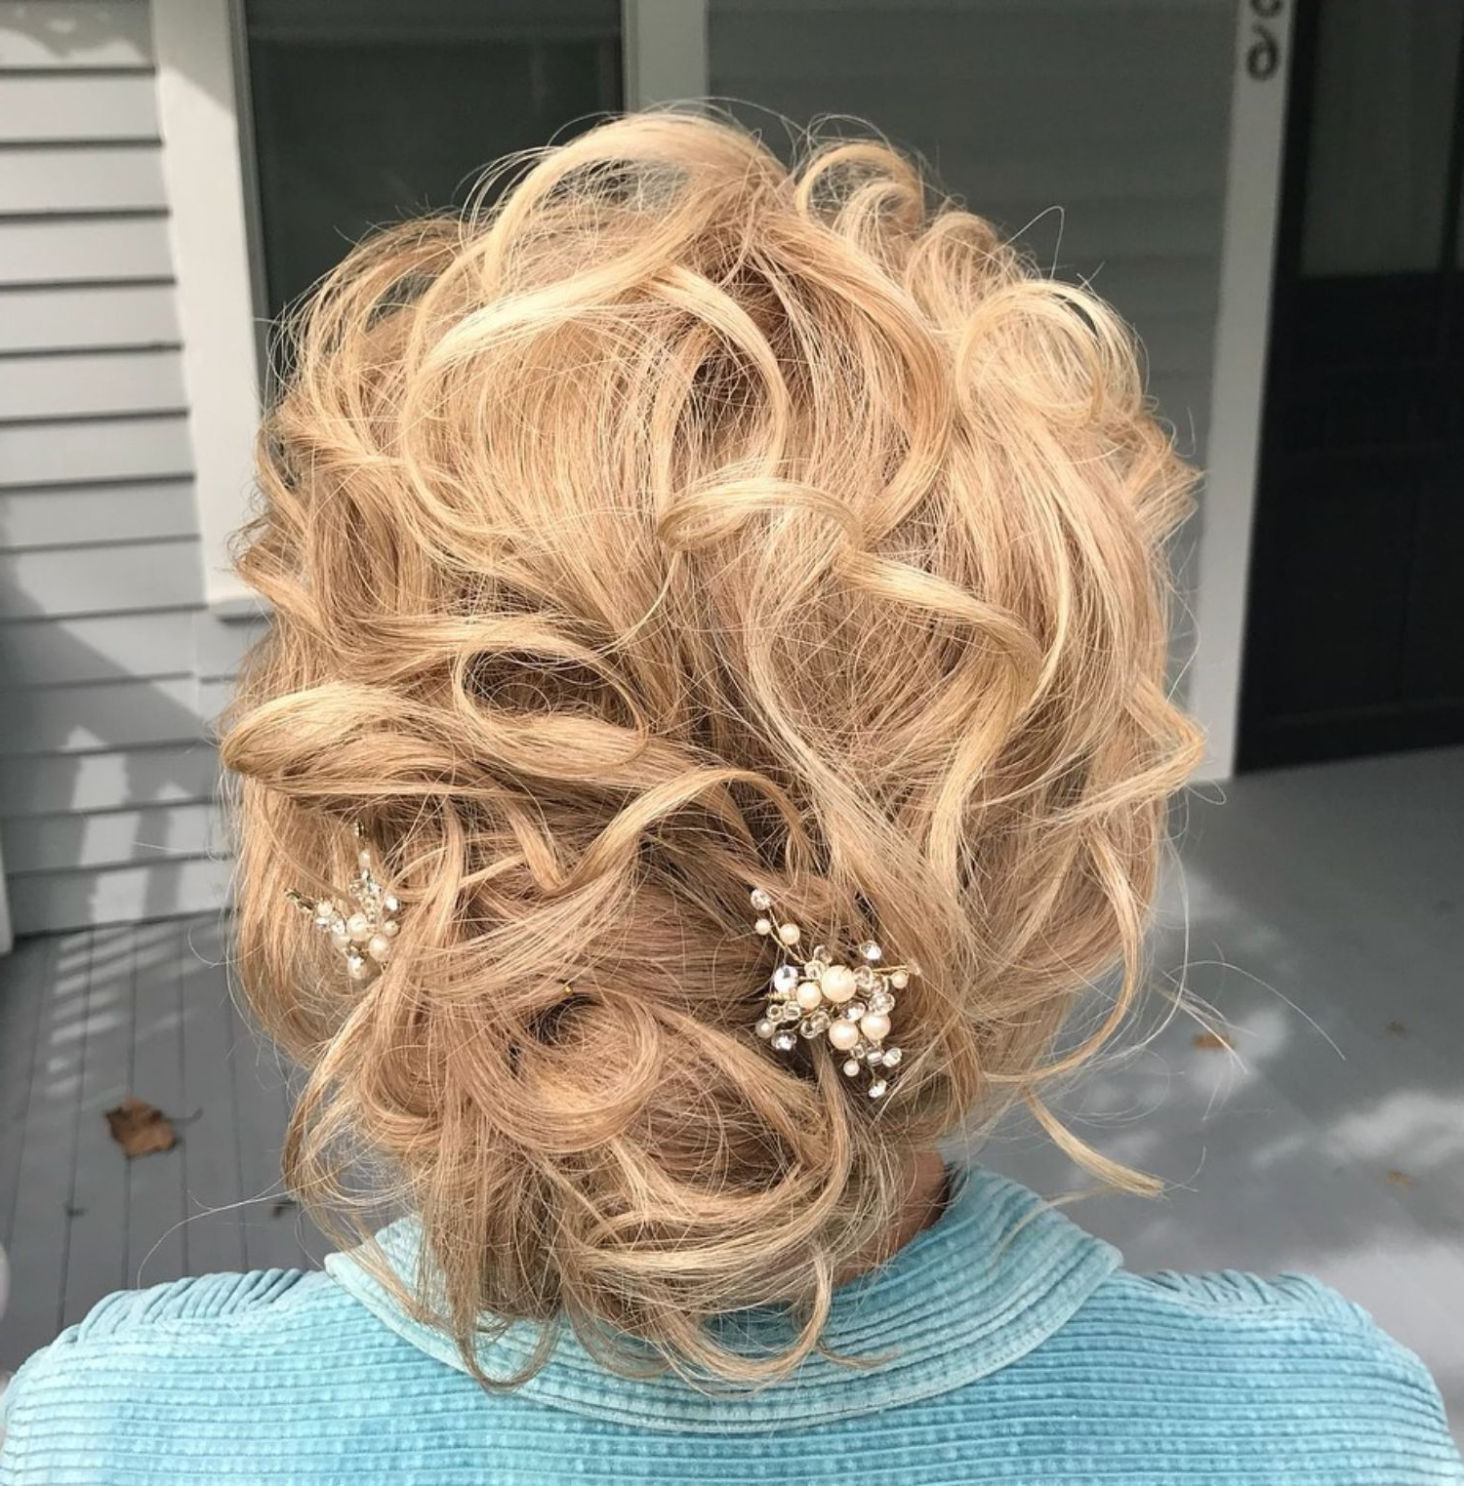 Tasha's Inside Widely Used Voluminous Curly Updo Hairstyles With Bangs (Gallery 17 of 20)